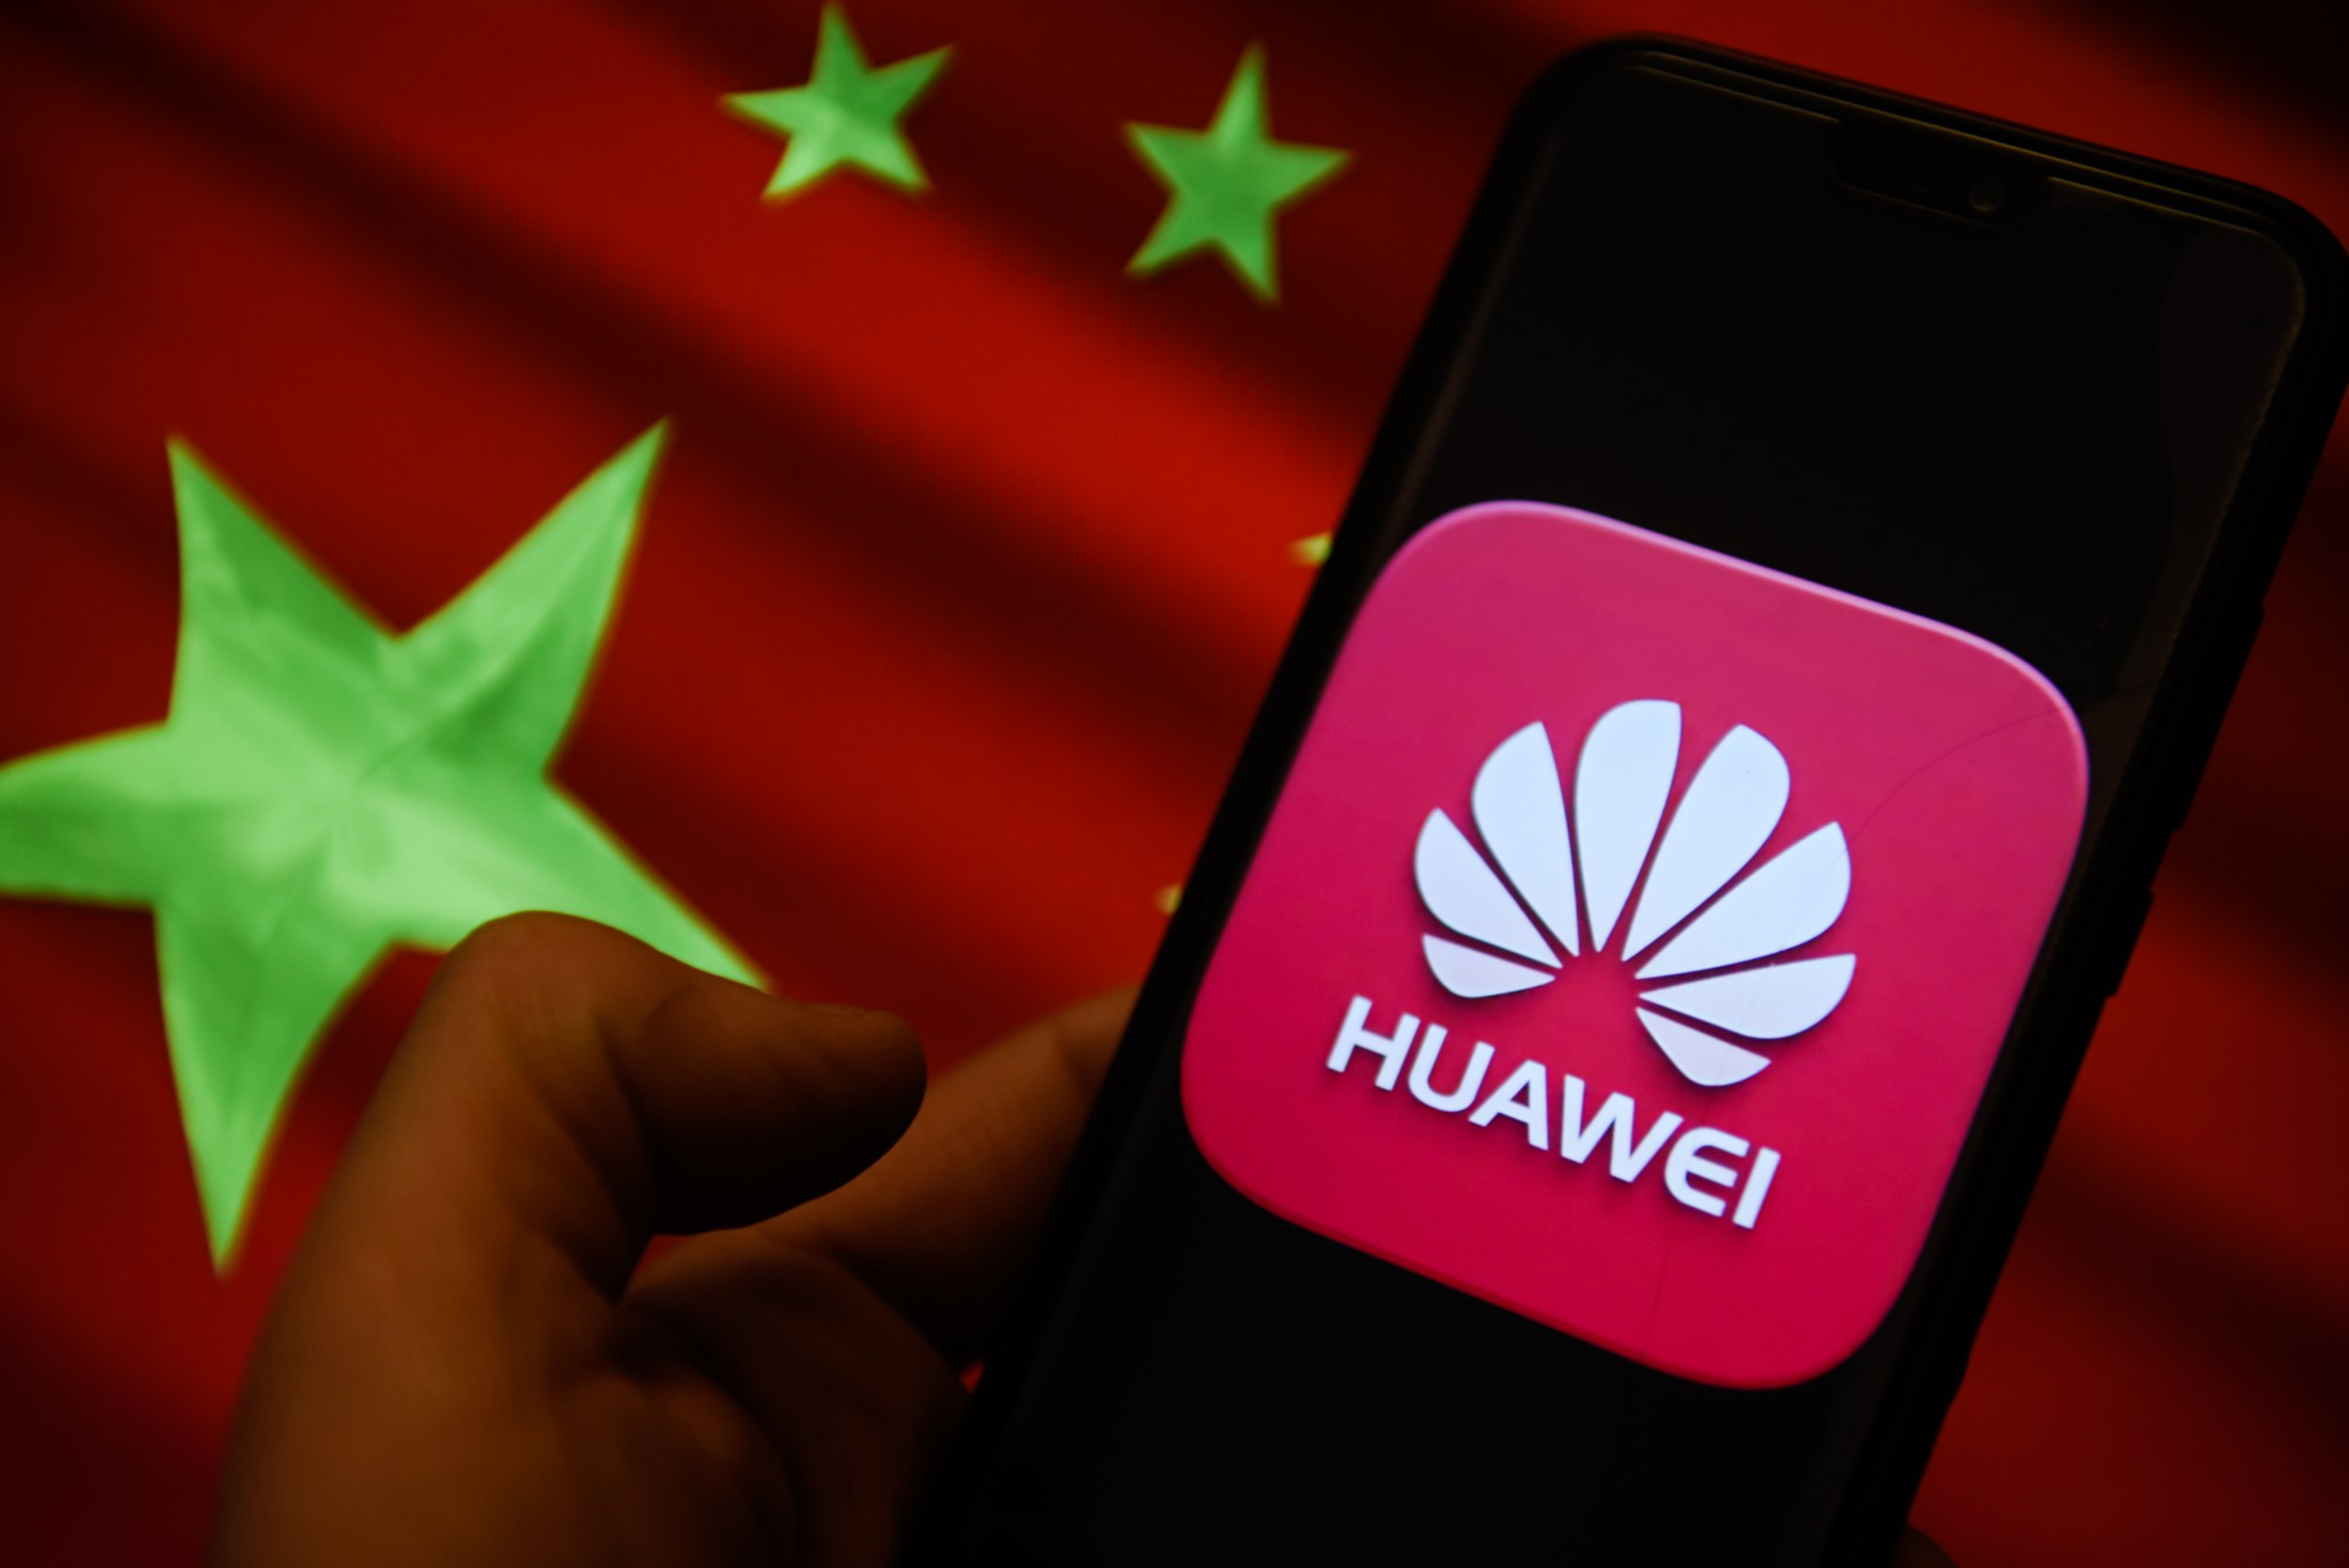 The UK could use Huawei for its 5G tech after all, bosses suggest